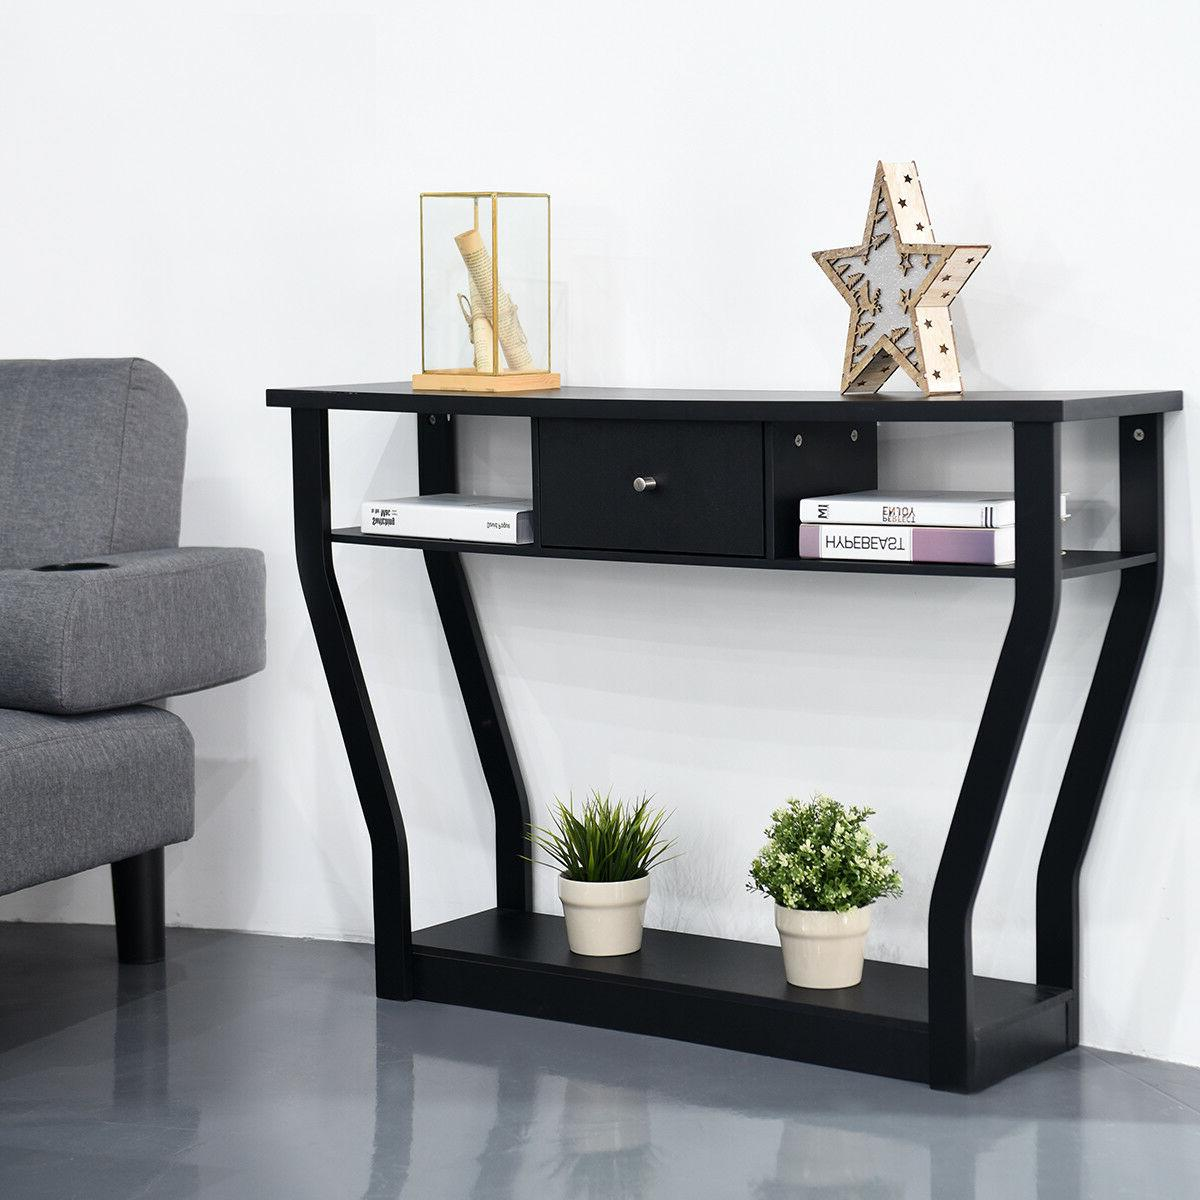 Black Accent Console Table Modern Sofa Hall Furniture W/Drawer